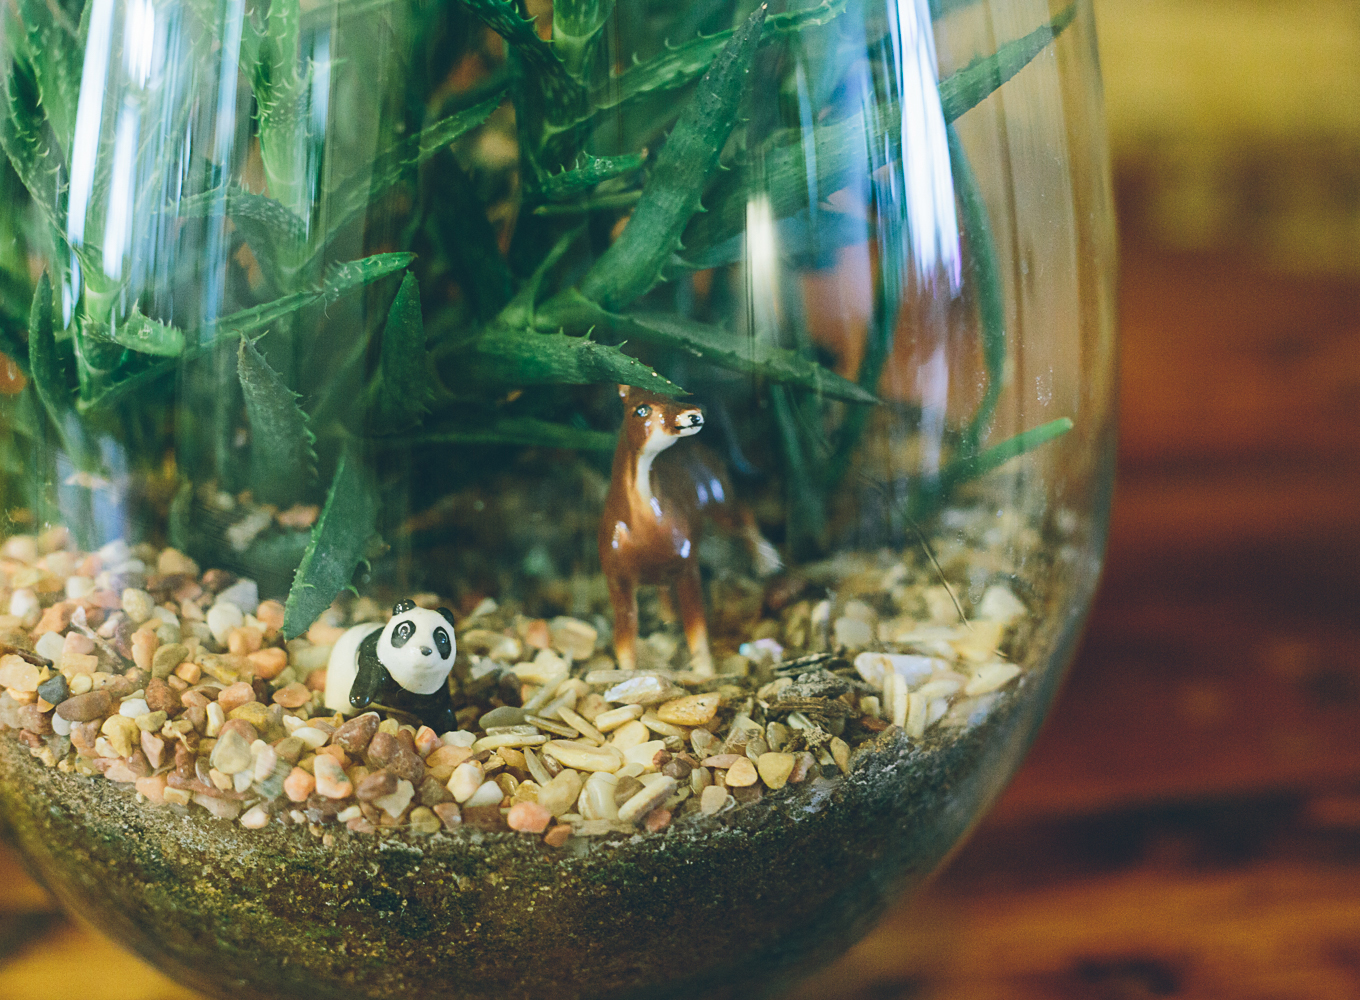 One of Haley's terrariums, a 3-year-old succulent terrarium. Succulents need different care than other types of plants (read more below).